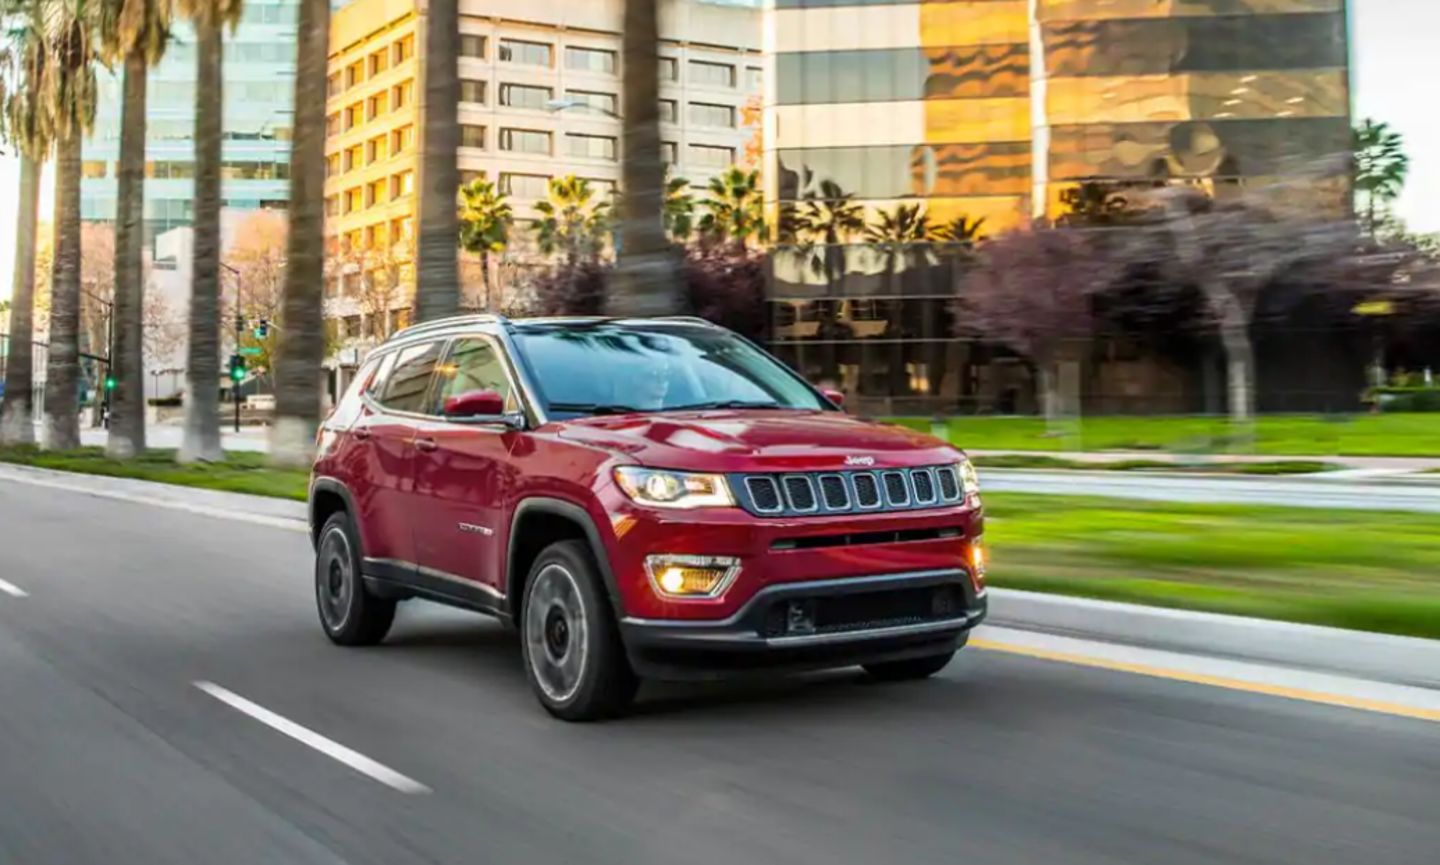 2021 Jeep Compass Upland Edition for sale in Edmonton, Alberta